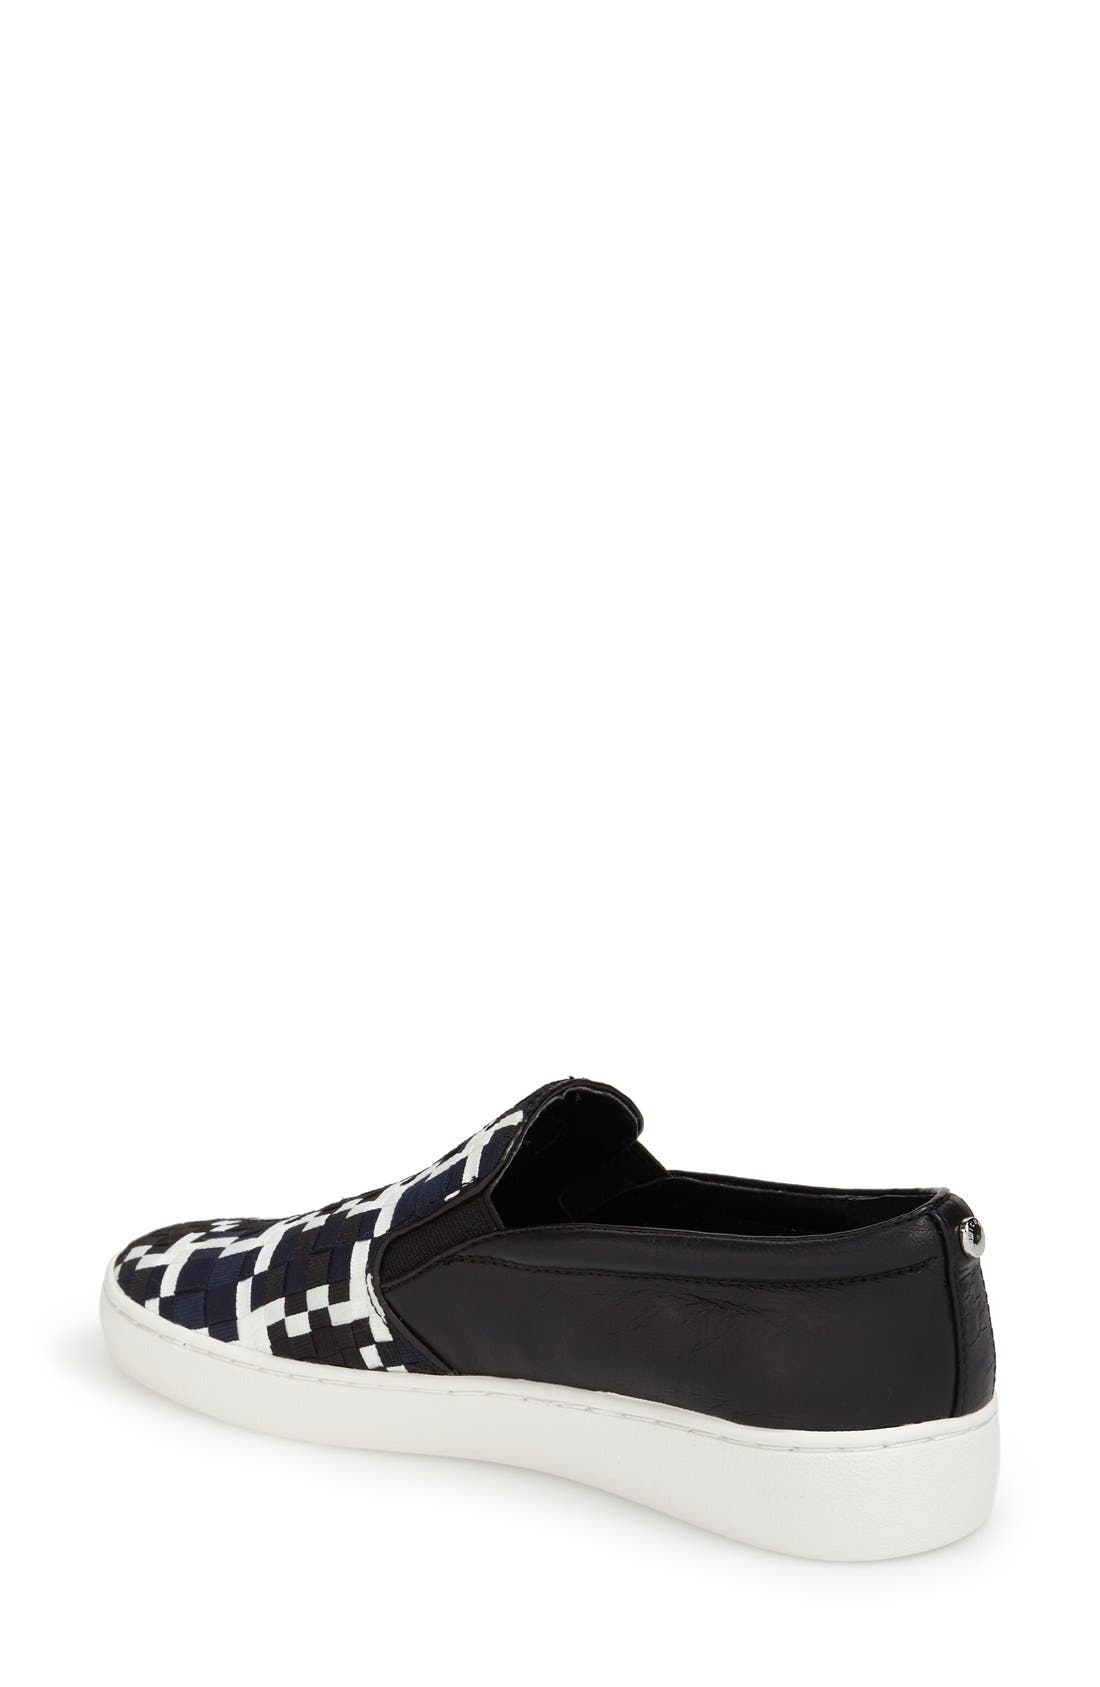 Keaton Slip-On Sneaker,                             Alternate thumbnail 84, color,